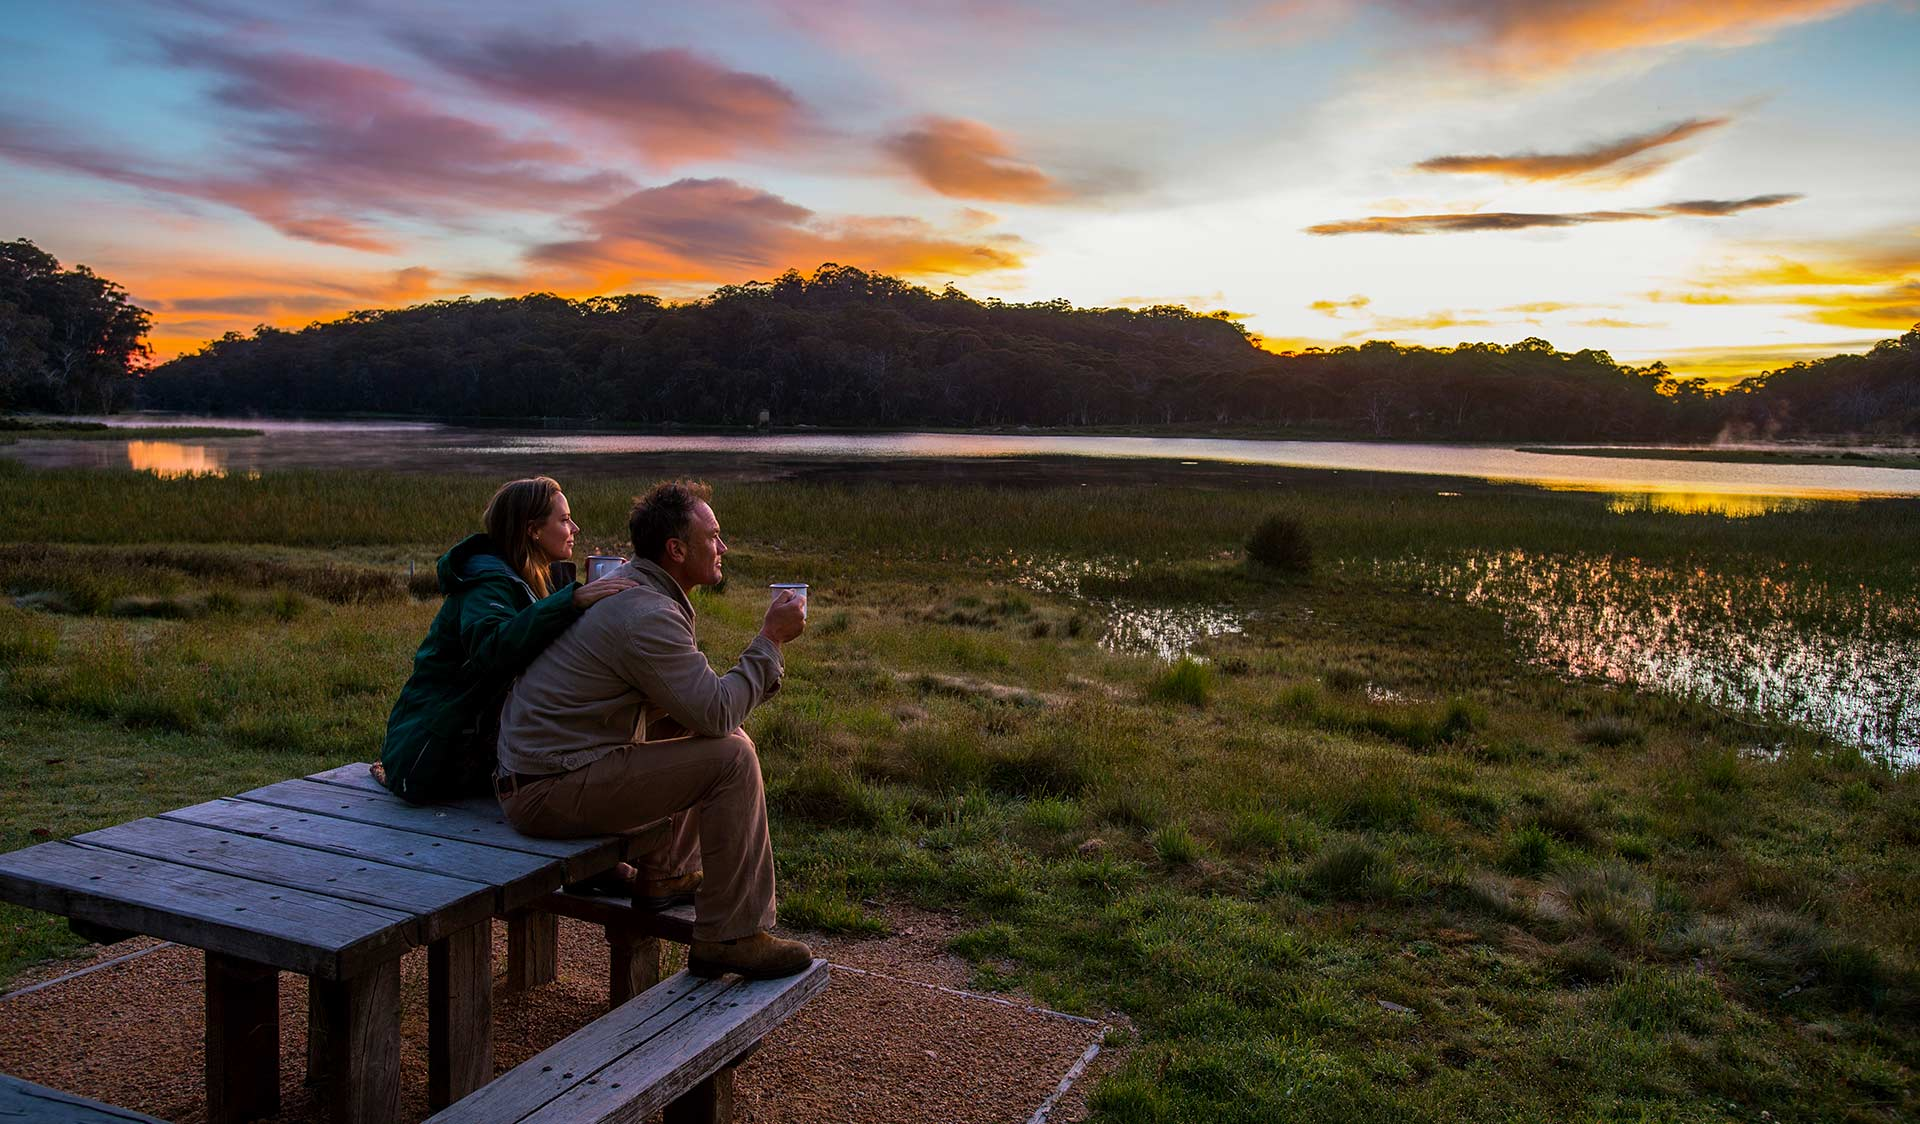 A couple watch the sunset at a picnic table on the edge of Lake Catani at Mount Buffalo National Park.